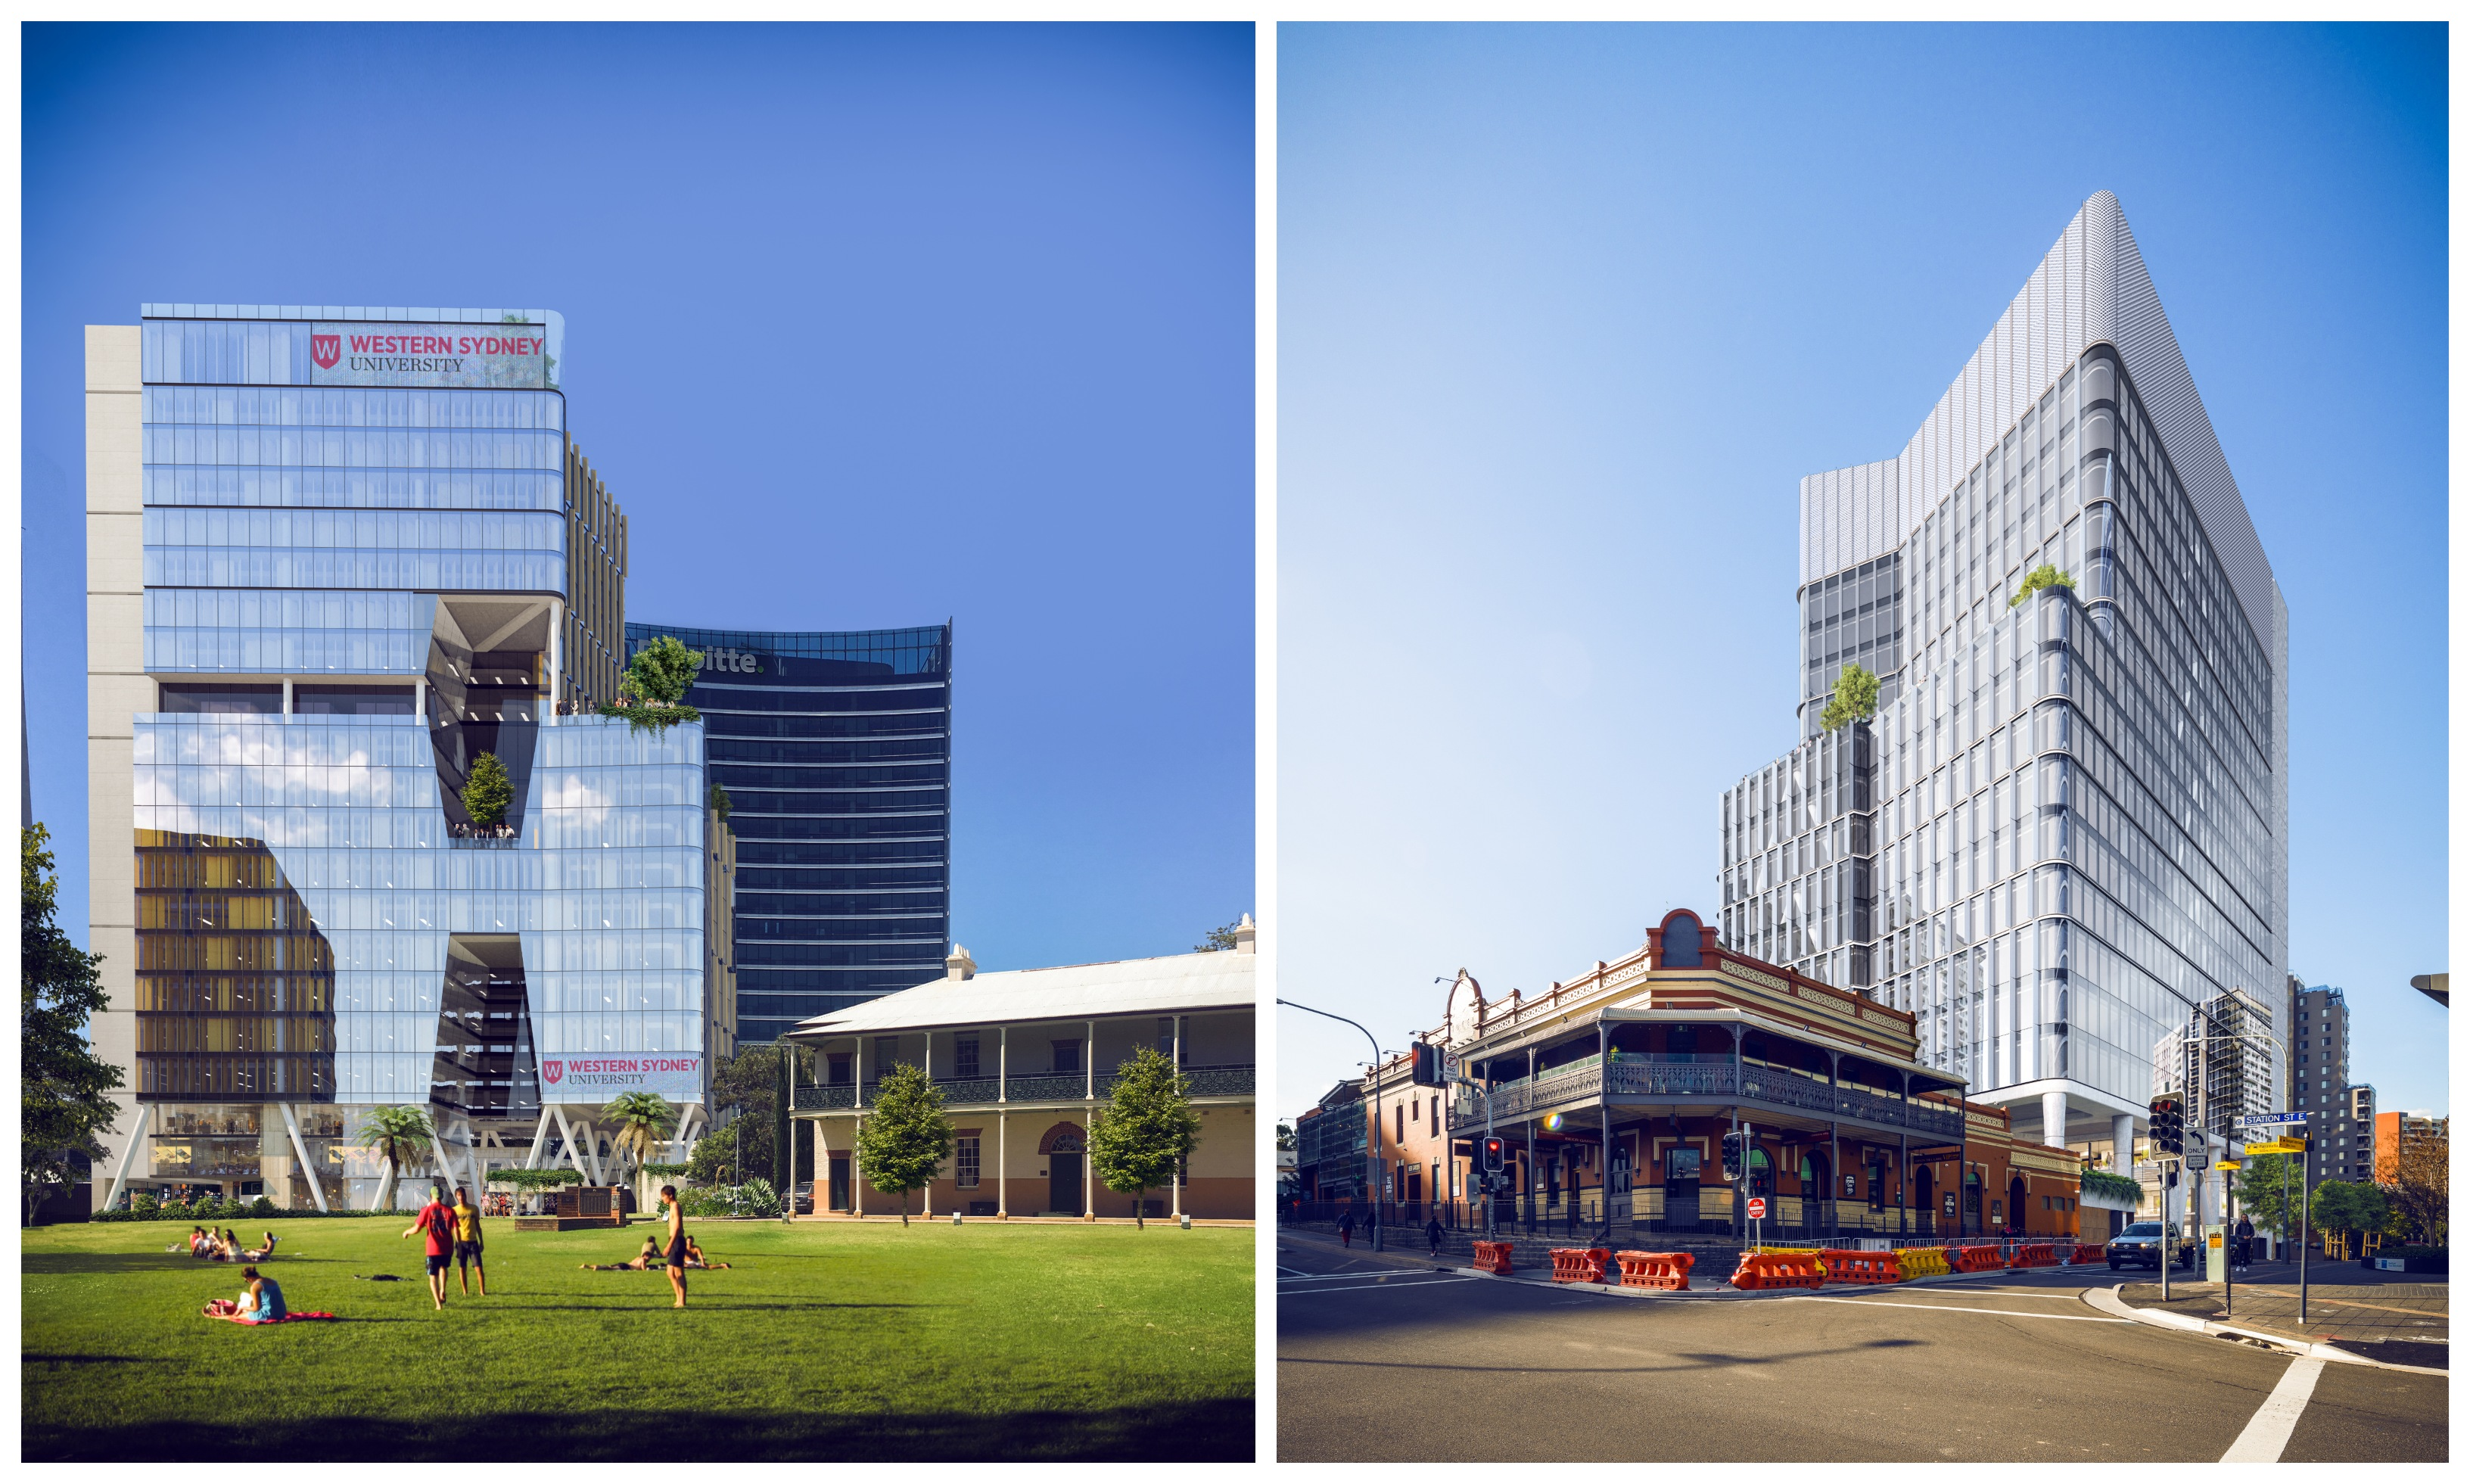 ▲ Earlier this year, design team Tzannes + Blight Rayner Architecture won the design competition to create the Engineering Innovation Hub which will be located in the heart of Parramatta's CBD. Image: Tzannes and Blight Rayner Architecture